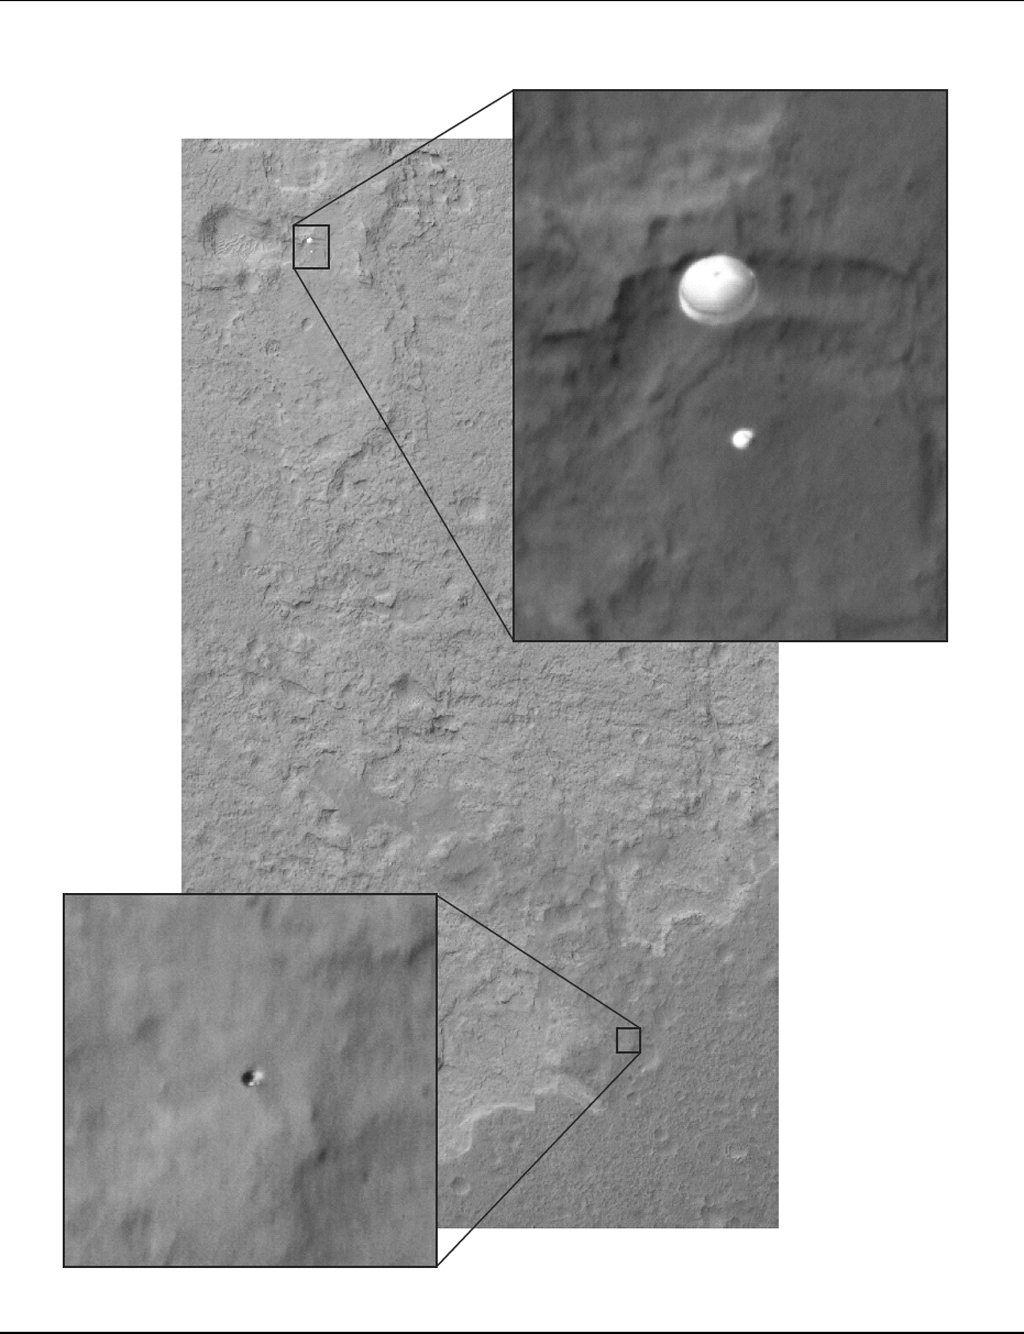 Late last night, in the morning hours of Aug. 6, as NASA's Curiosity rover fell to the surface of Mars, NASA's Mars Reconnaissance Orbiter (MRO) captured an image of the rover gliding on its parachute.